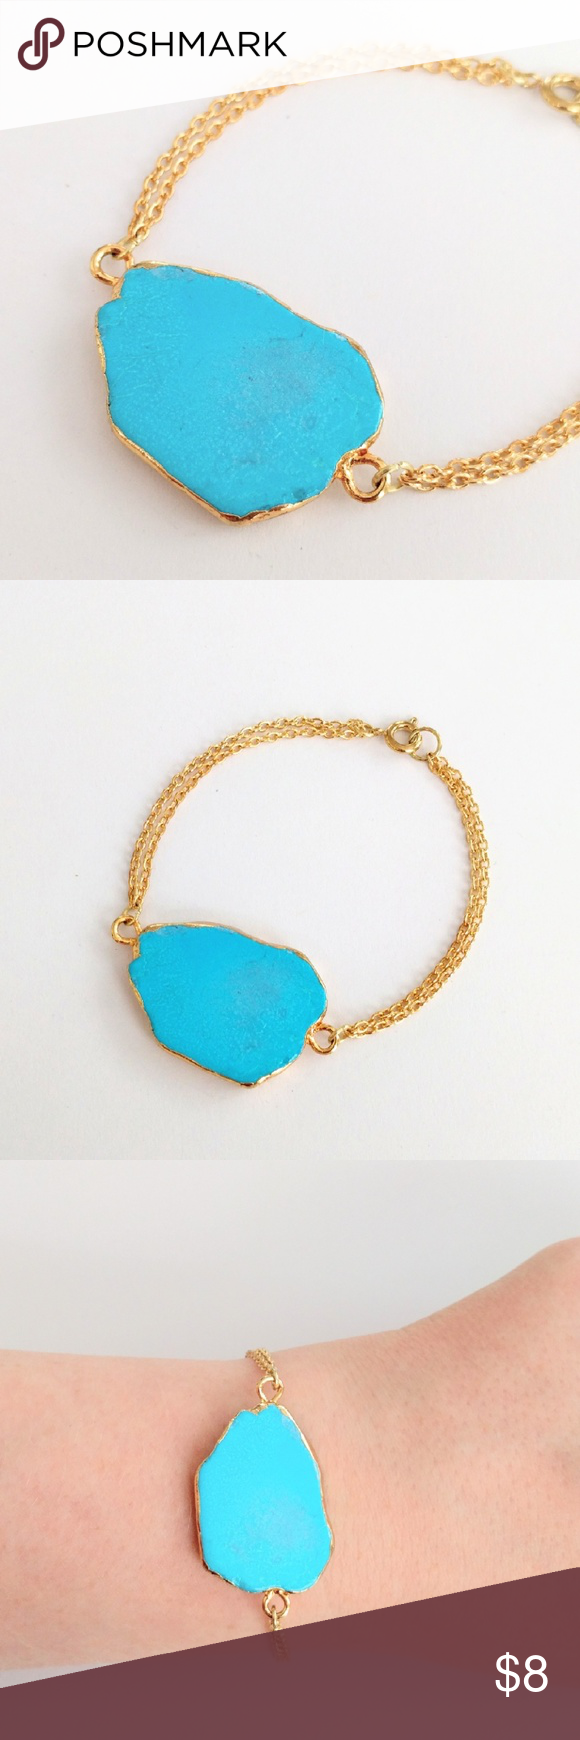 "Gold-plated genuine turquoise howlite bracelet True beauty in simplicity!  A gold-plated natural howlite stone takes center stage in a bracelet you'll reach for again and again!  Ideal for a subtle statement on its own or stacked with other bracelets!  The vivid blue tones are exquisite...like diving into a summer sky!  Nickel and lead free; about 7.5"" long.  PRICE IS FIRM and extremely reasonable, but click ""add to bundle"" to save 10% on your purchase of 2+ items! Jewelry Bracelets"